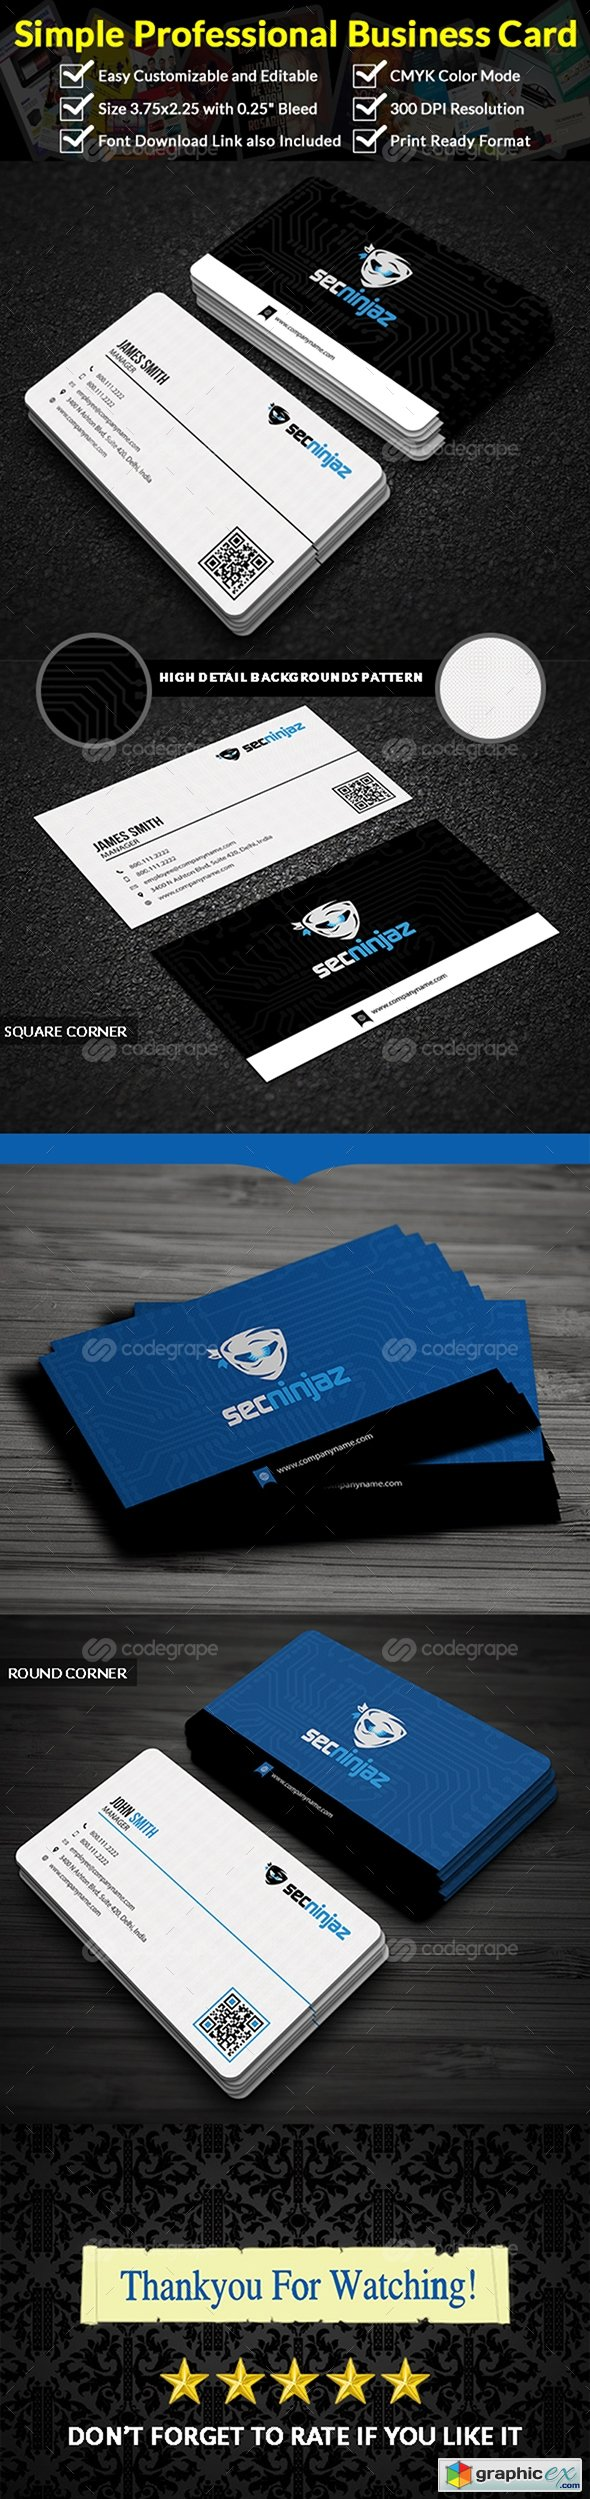 Professional Business Card 11498